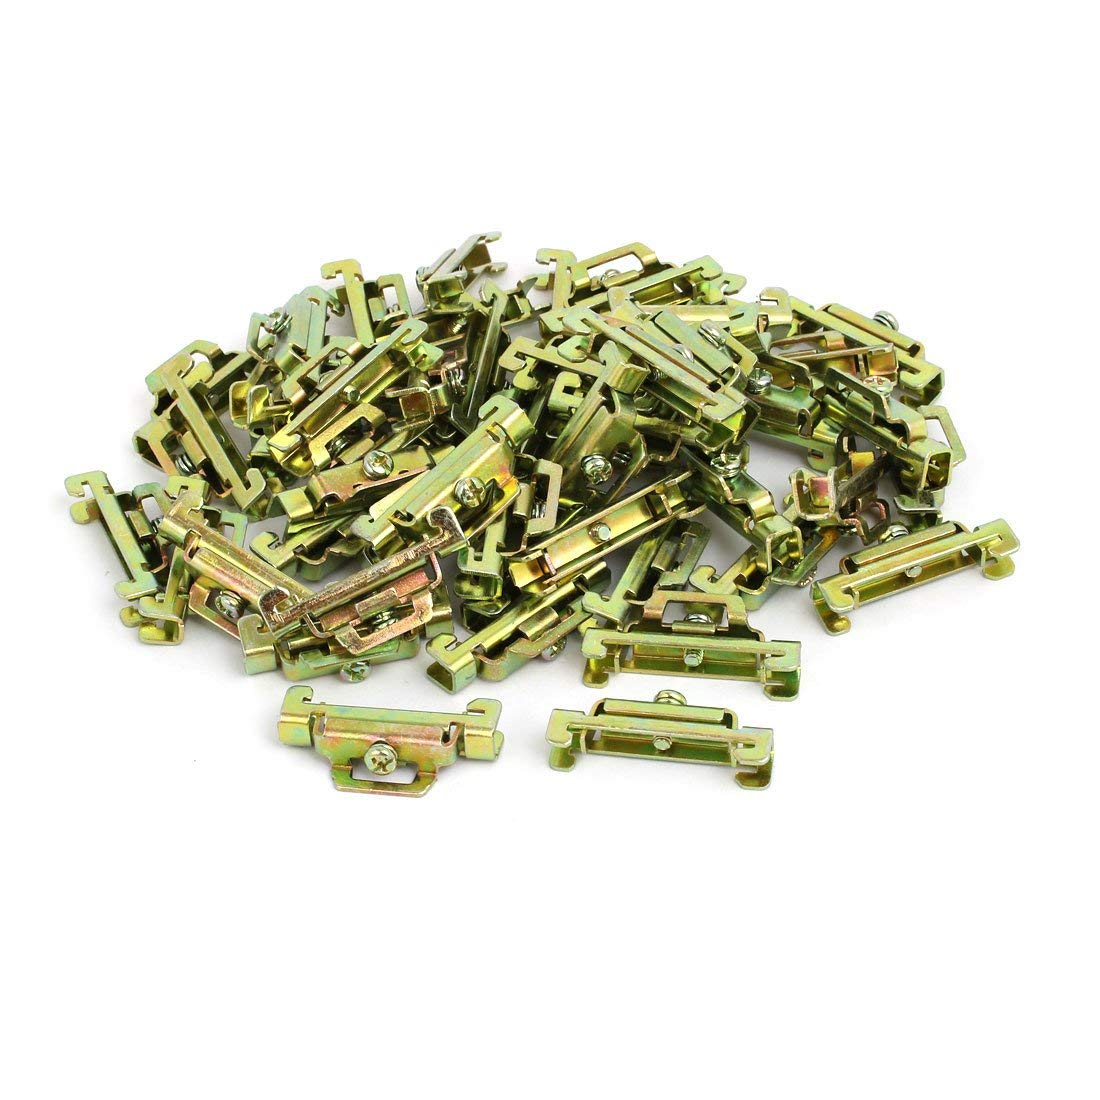 uxcell 50 Pcs 35mm Width DIN Guide Rail Buckle Fixed Clamp Bronze Tone 44mmx8mmx22mm